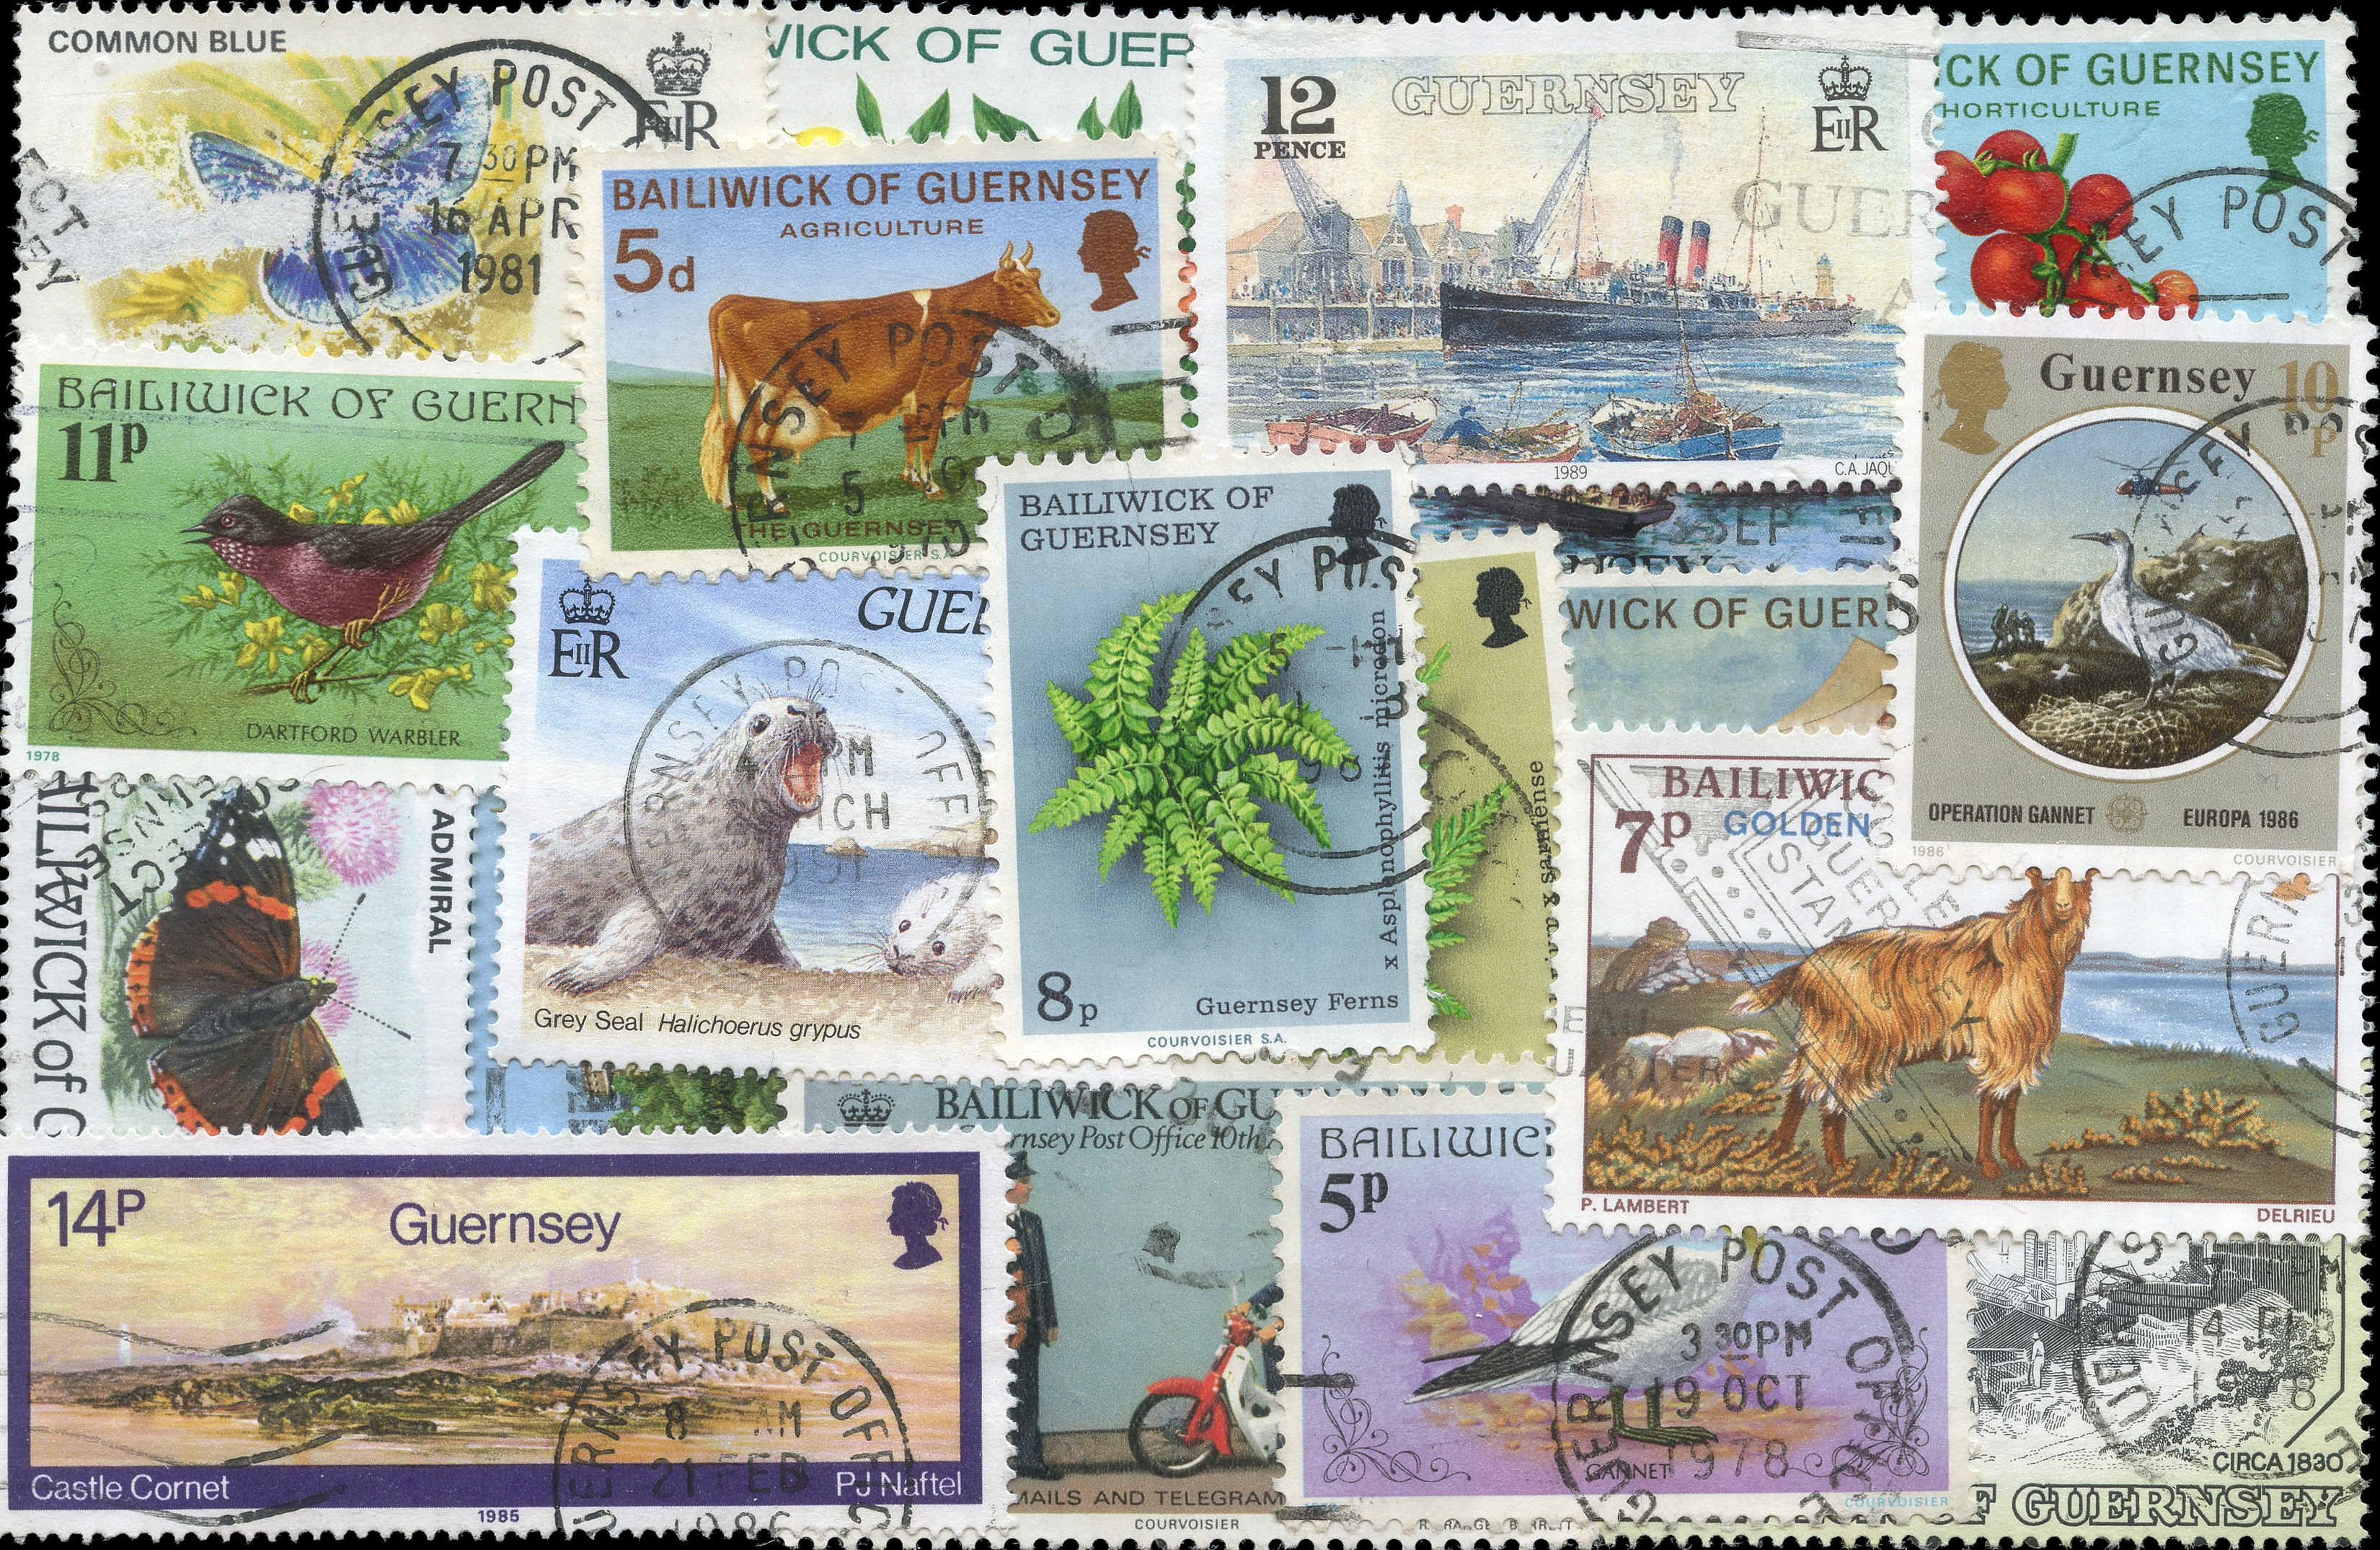 Buy Guernsey Stamp Packet Arpin Philately